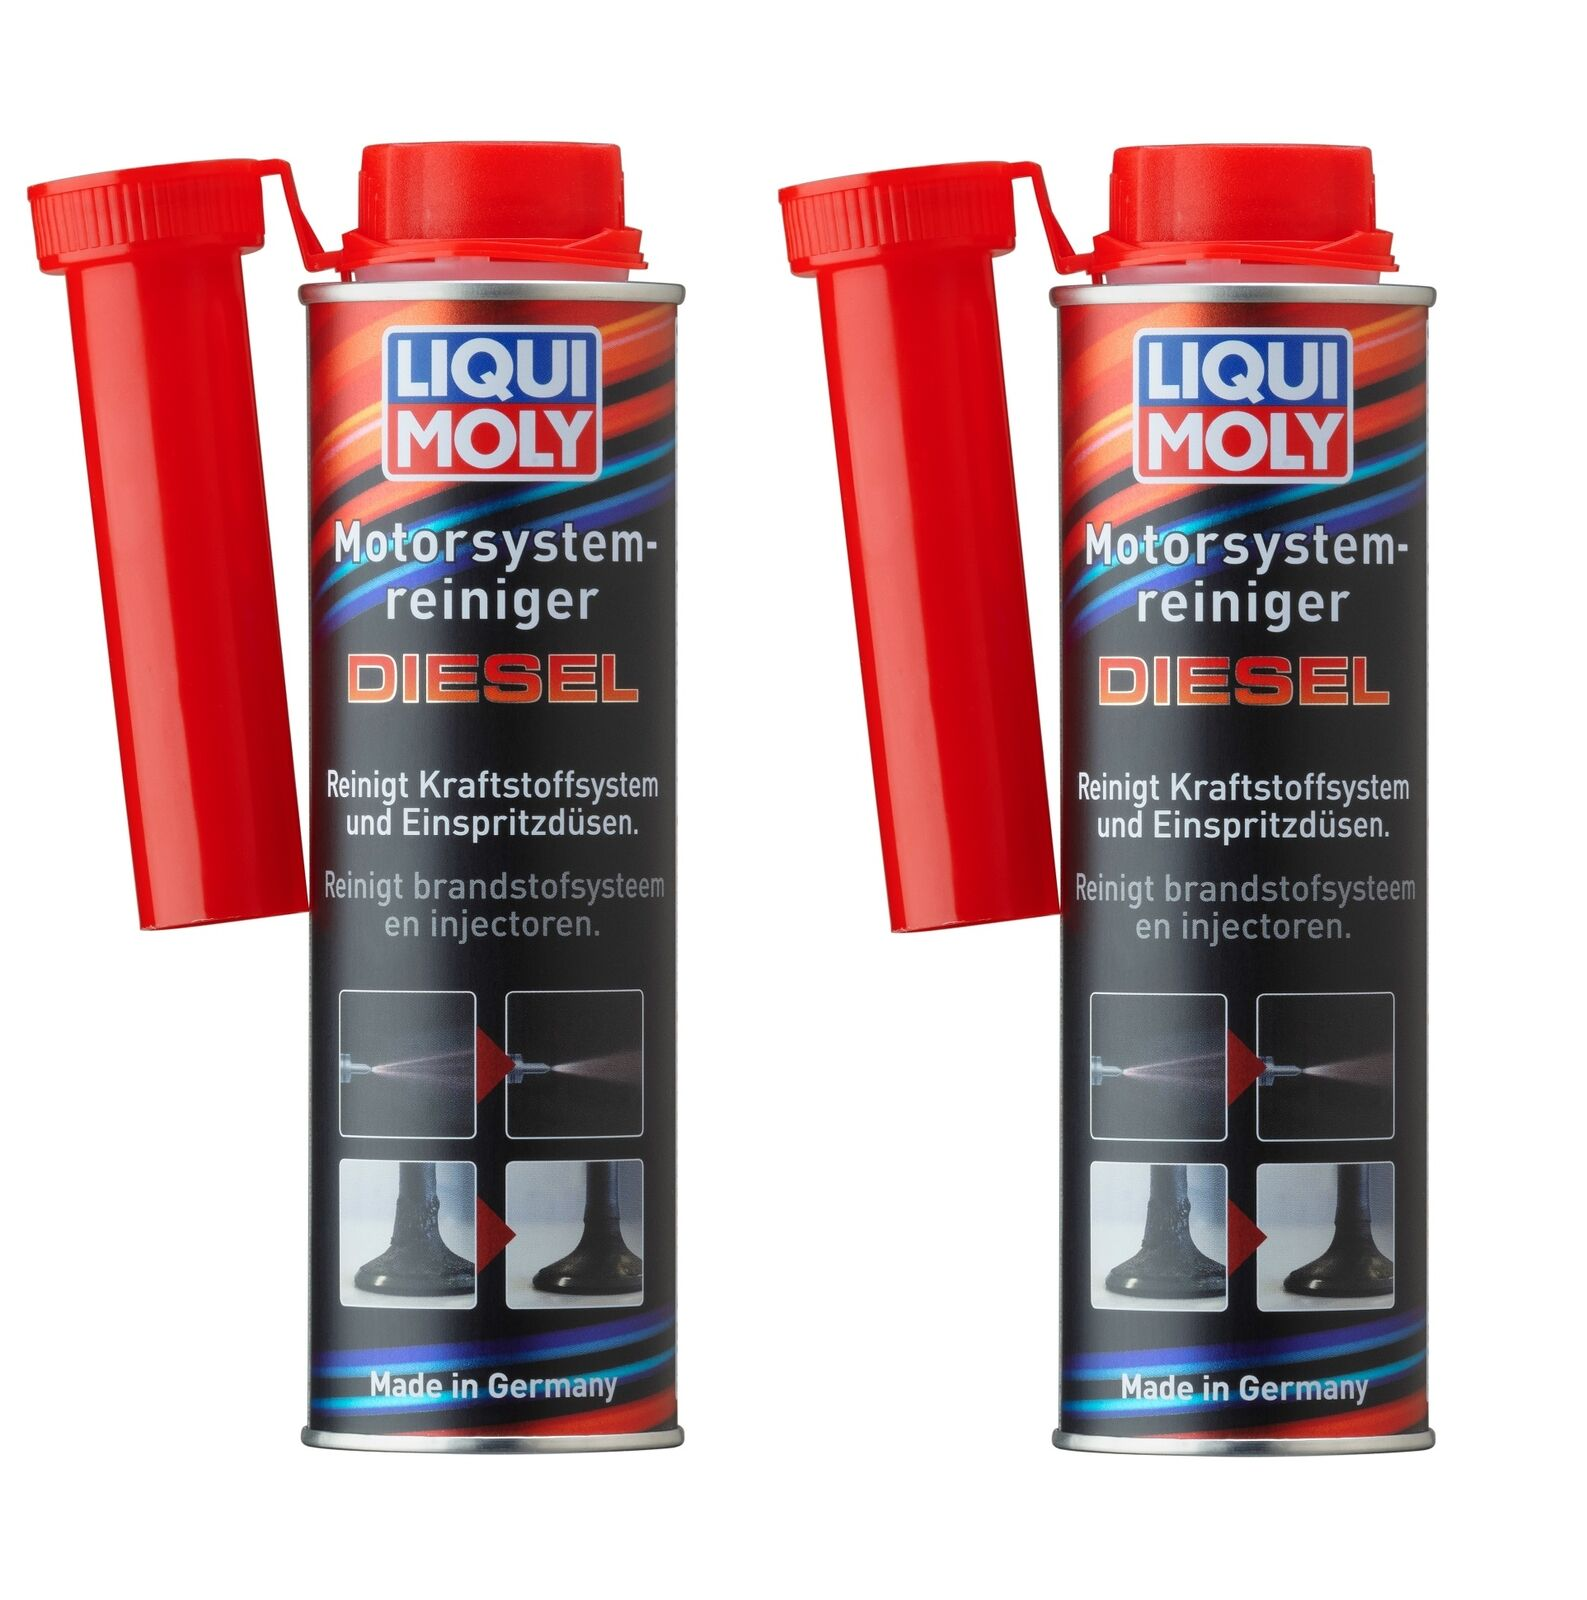 2x liqui moly motor system reiniger diesel 300 ml. Black Bedroom Furniture Sets. Home Design Ideas